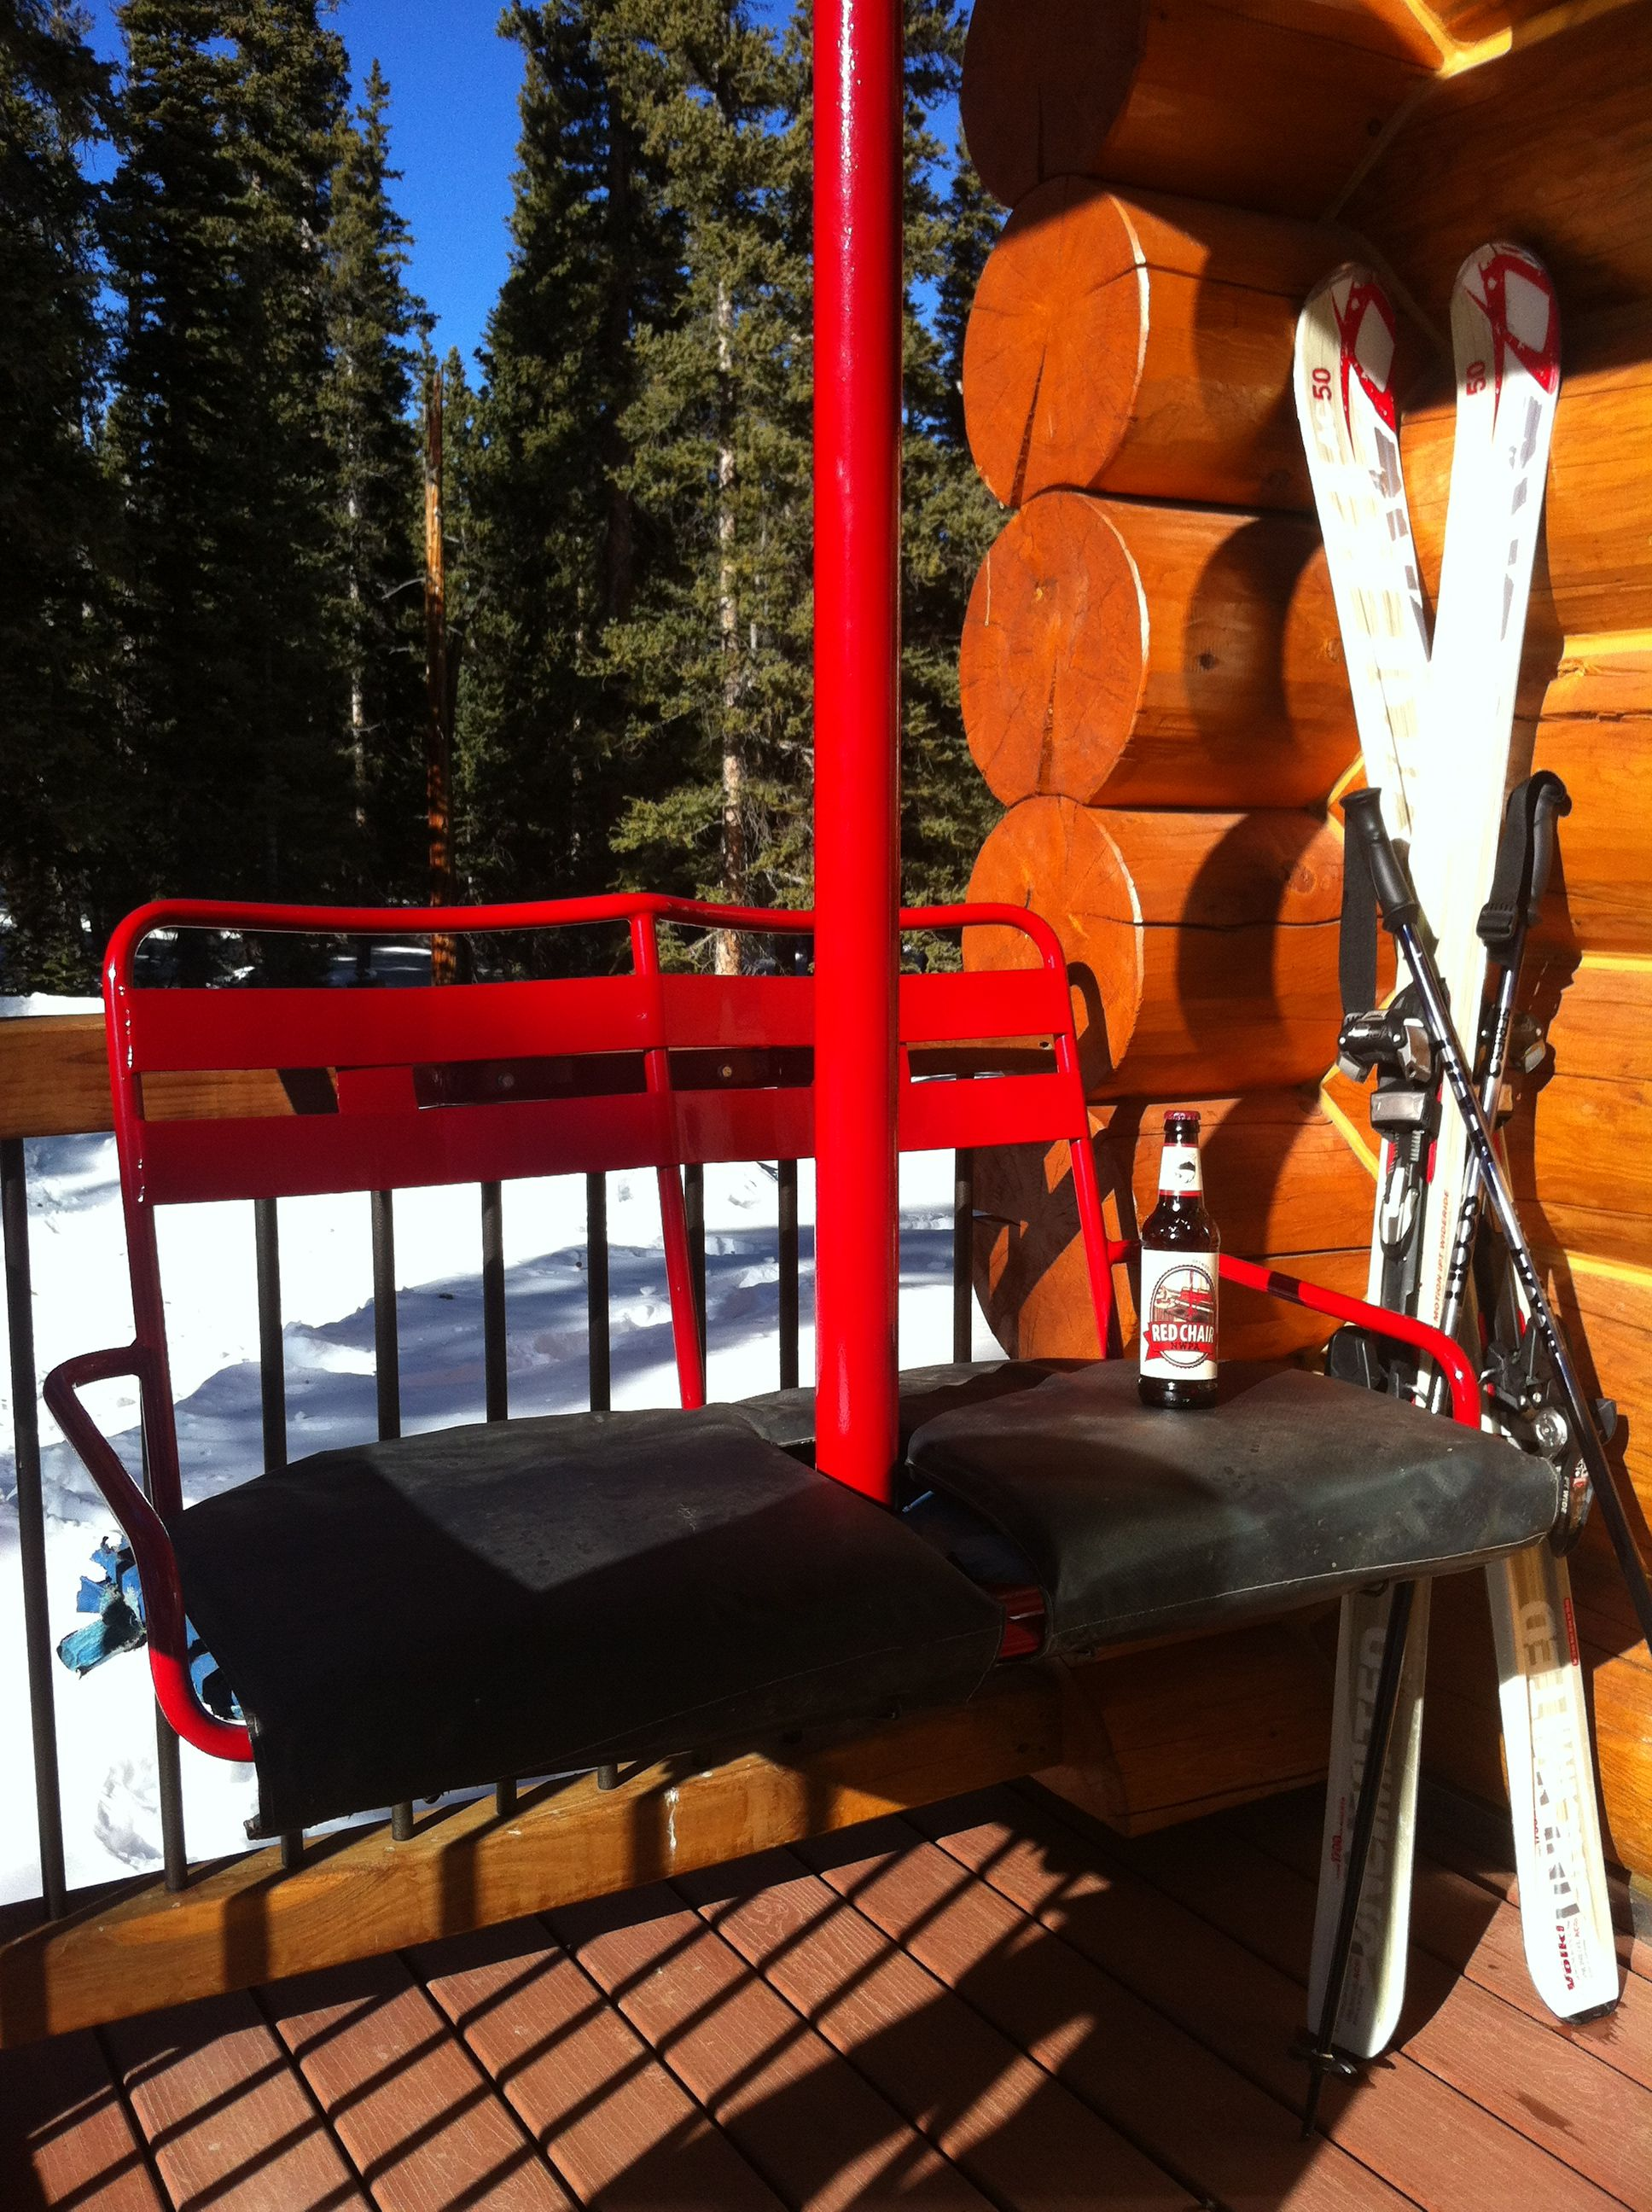 red chair nwpa abv design in solidworks neat ideas use an old ski lift as a front porch